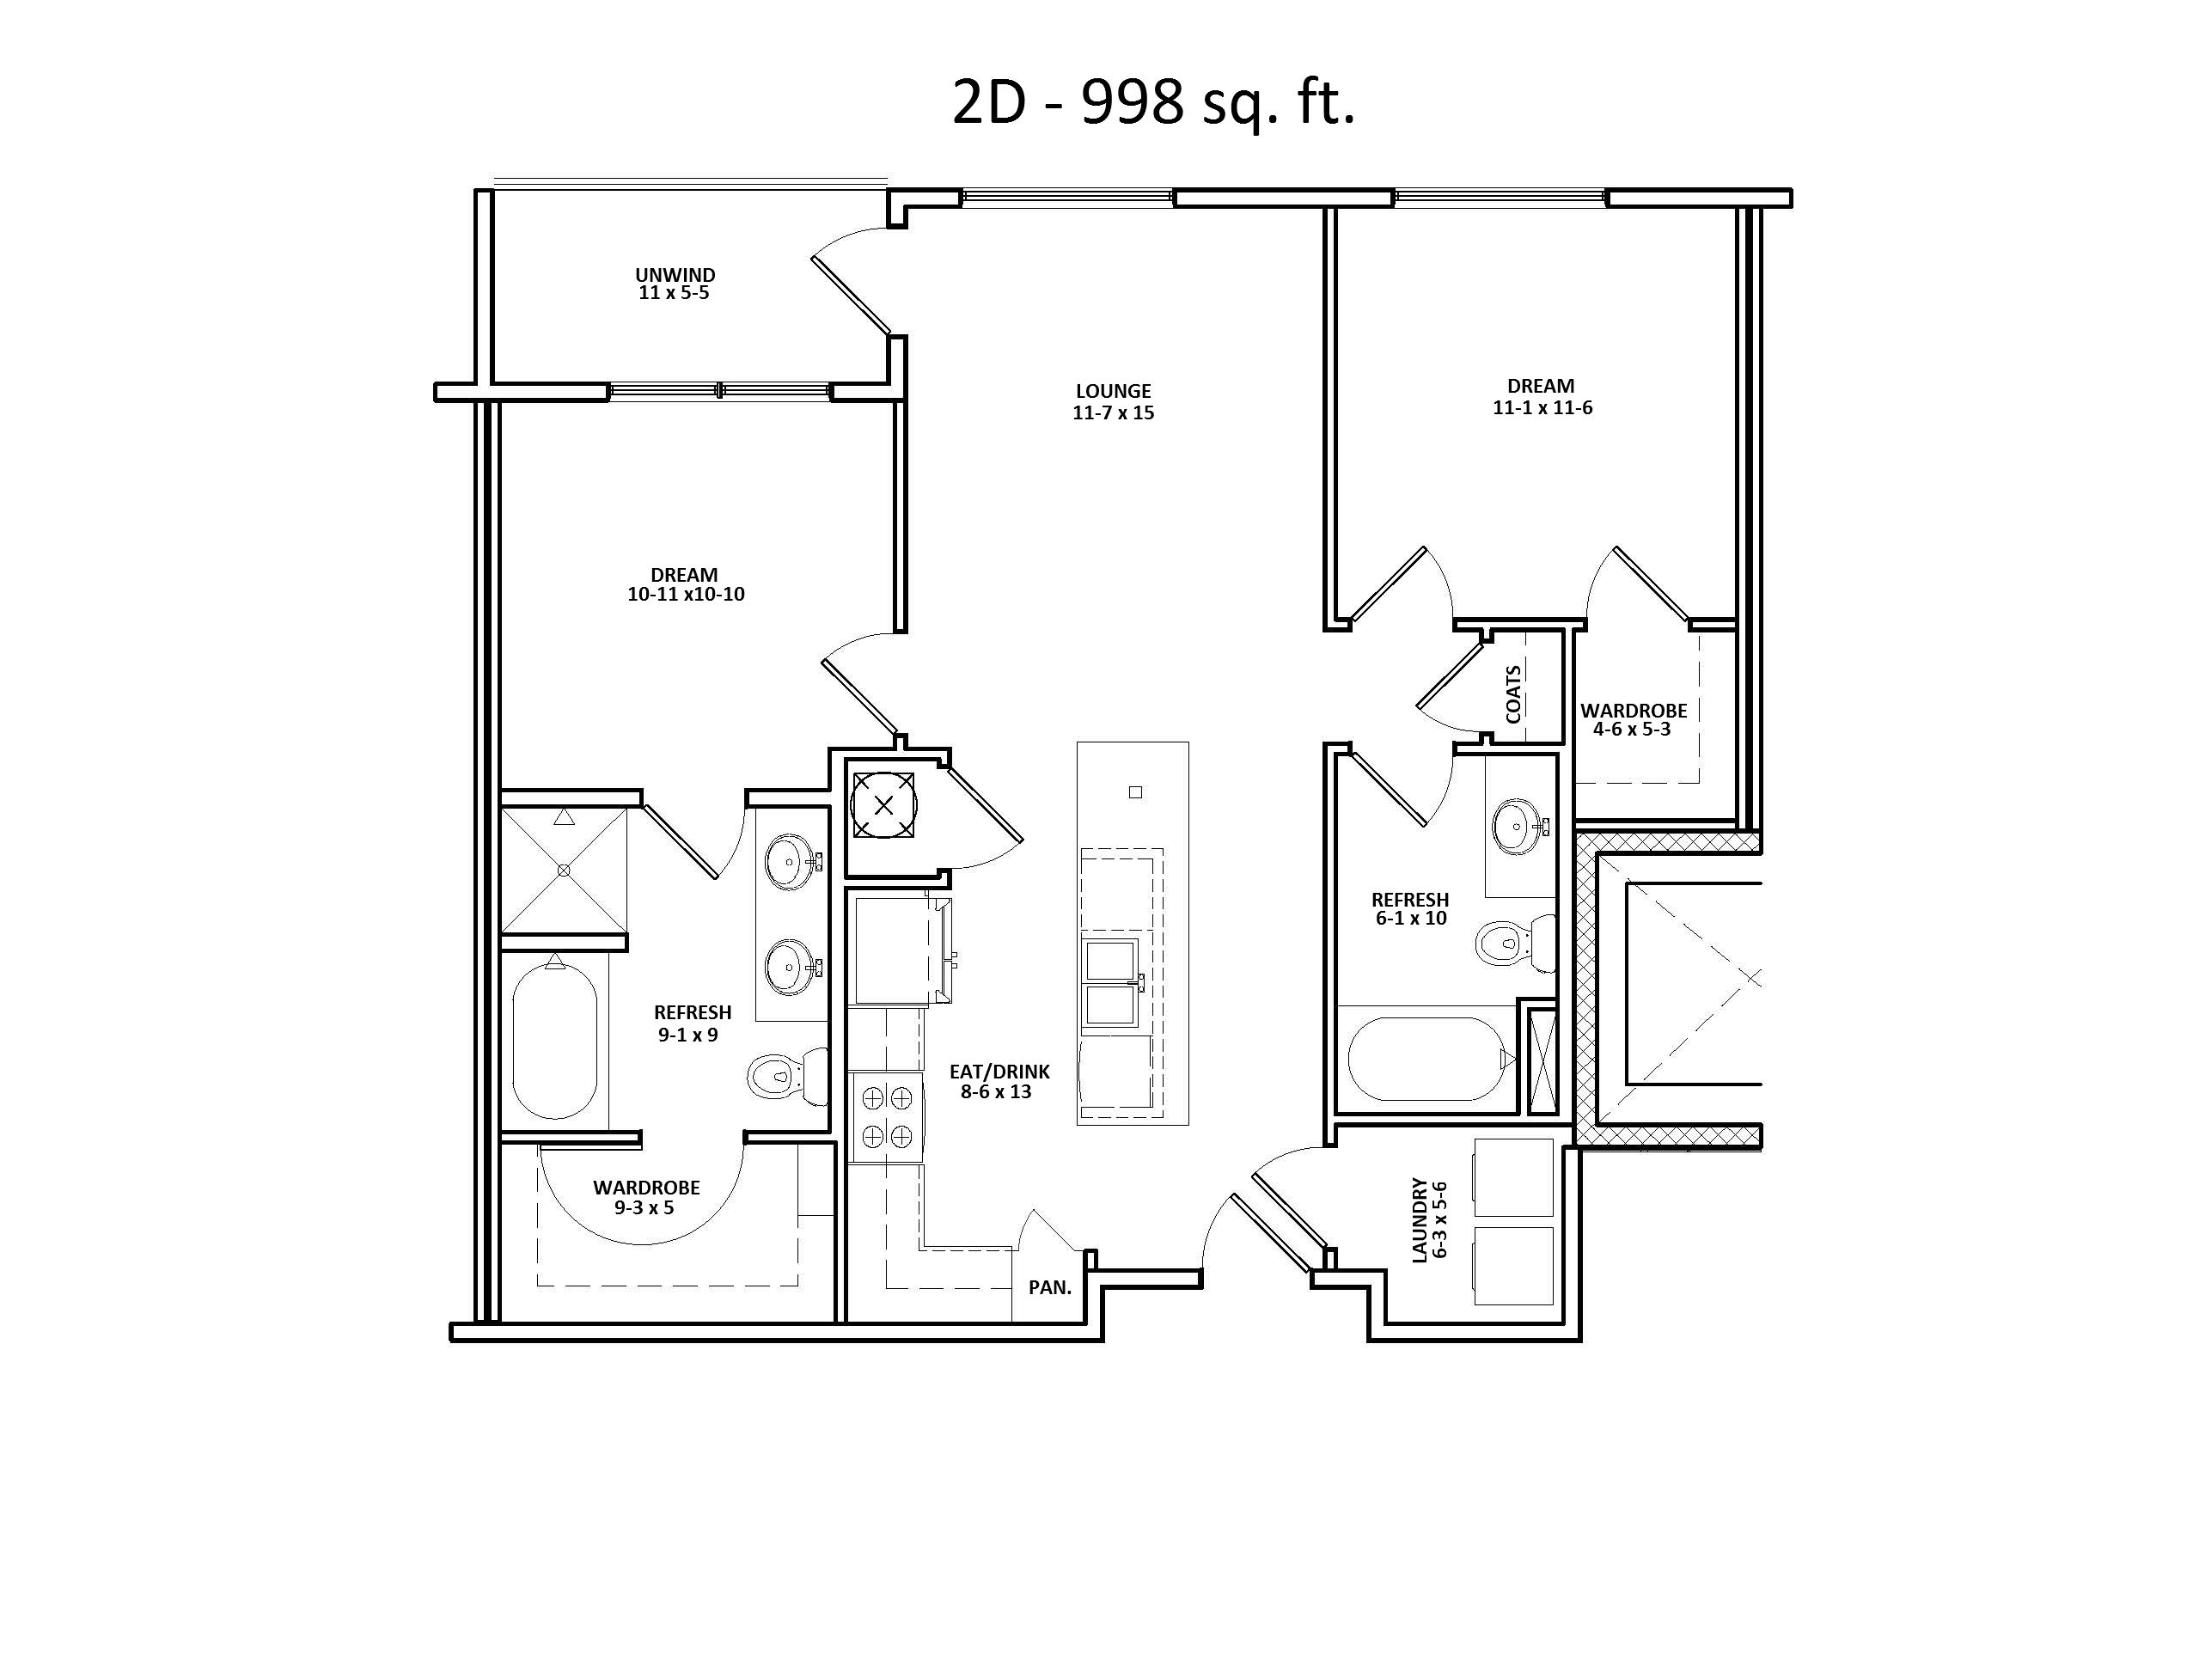 2 D Floor Plan, Two Bed, Two Bath, Discovery at the Realm (Castle Hills), Texas